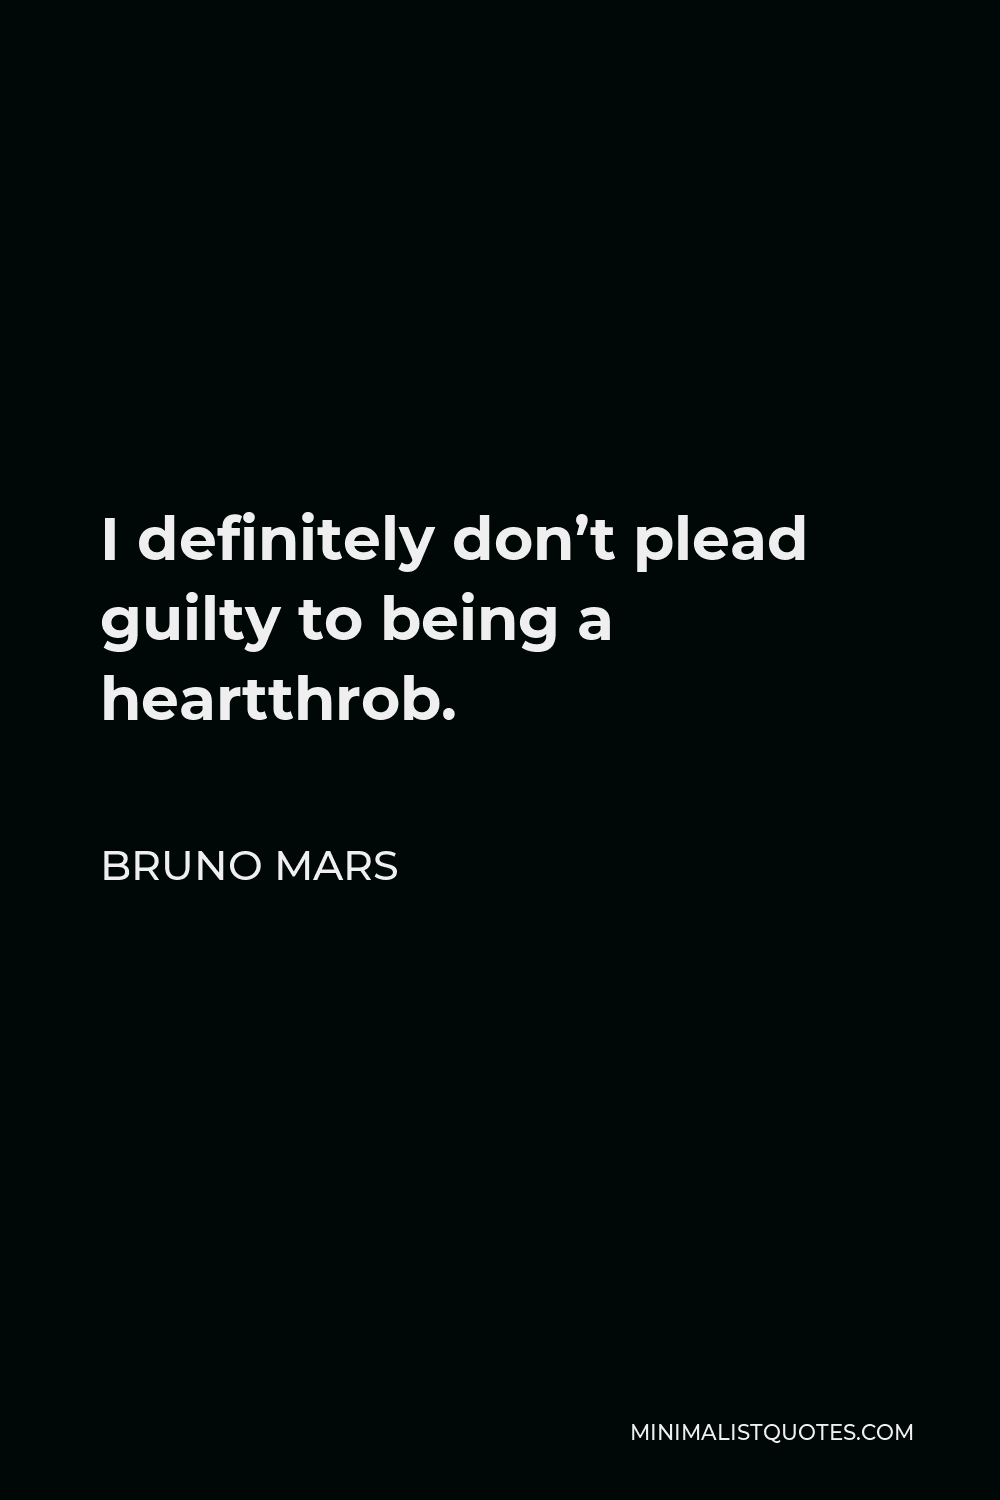 Bruno Mars Quote - I definitely don't plead guilty to being a heartthrob.